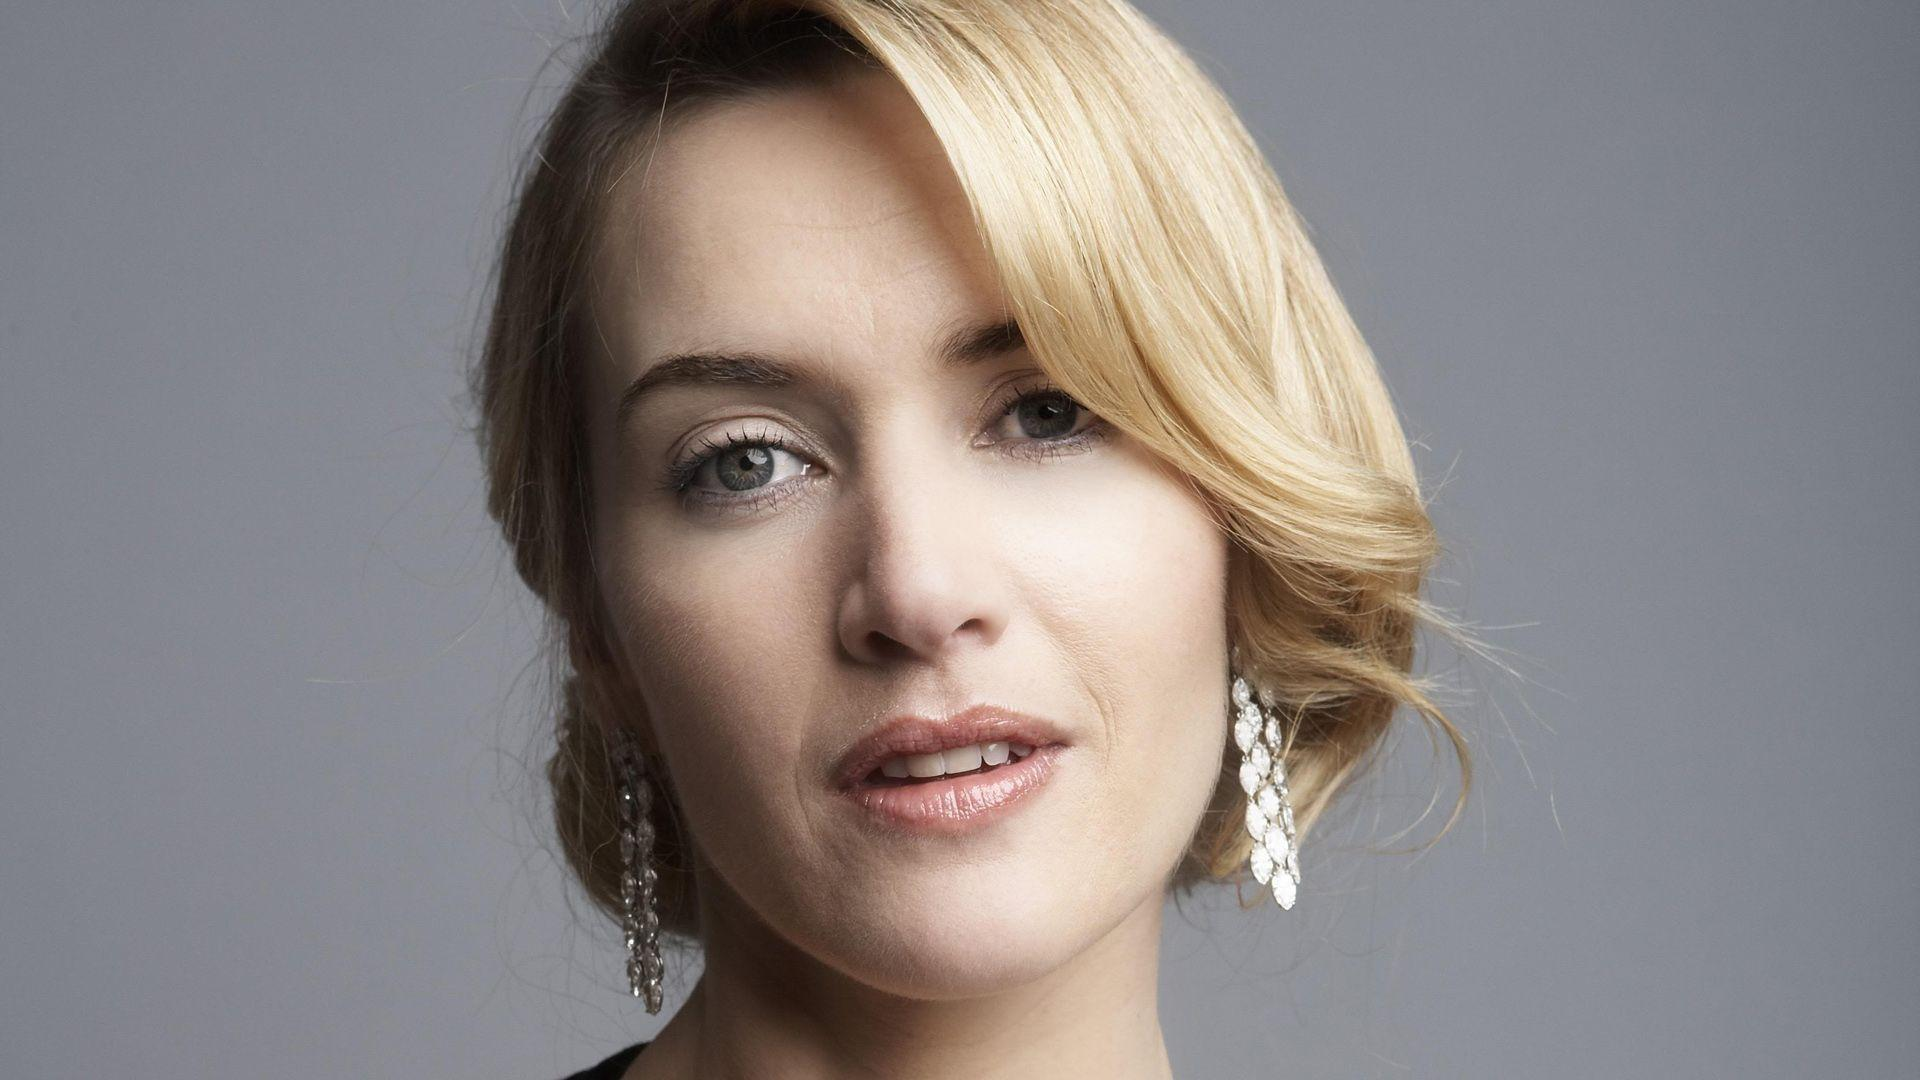 Kate Winslet Wallpapers High Quality | Download Free